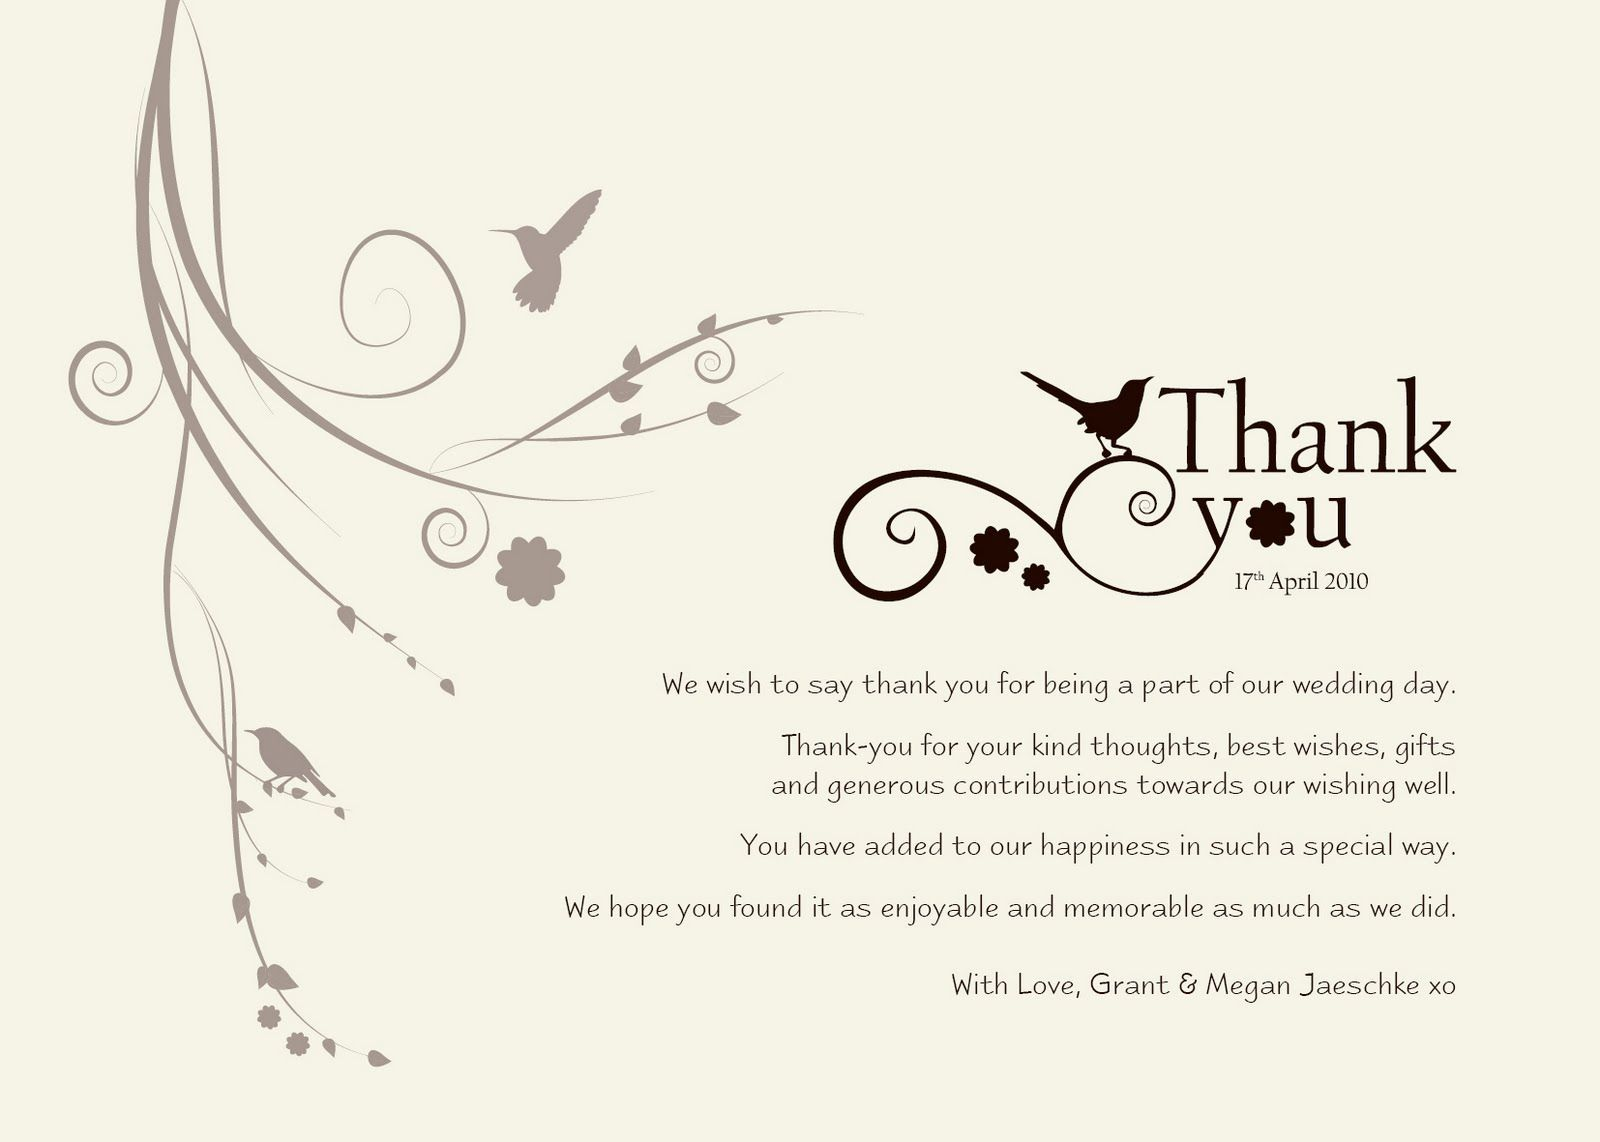 Wedding Gift Thank You Greetings : thank you card wording wedding thank you cards wedding wishes wedding ...